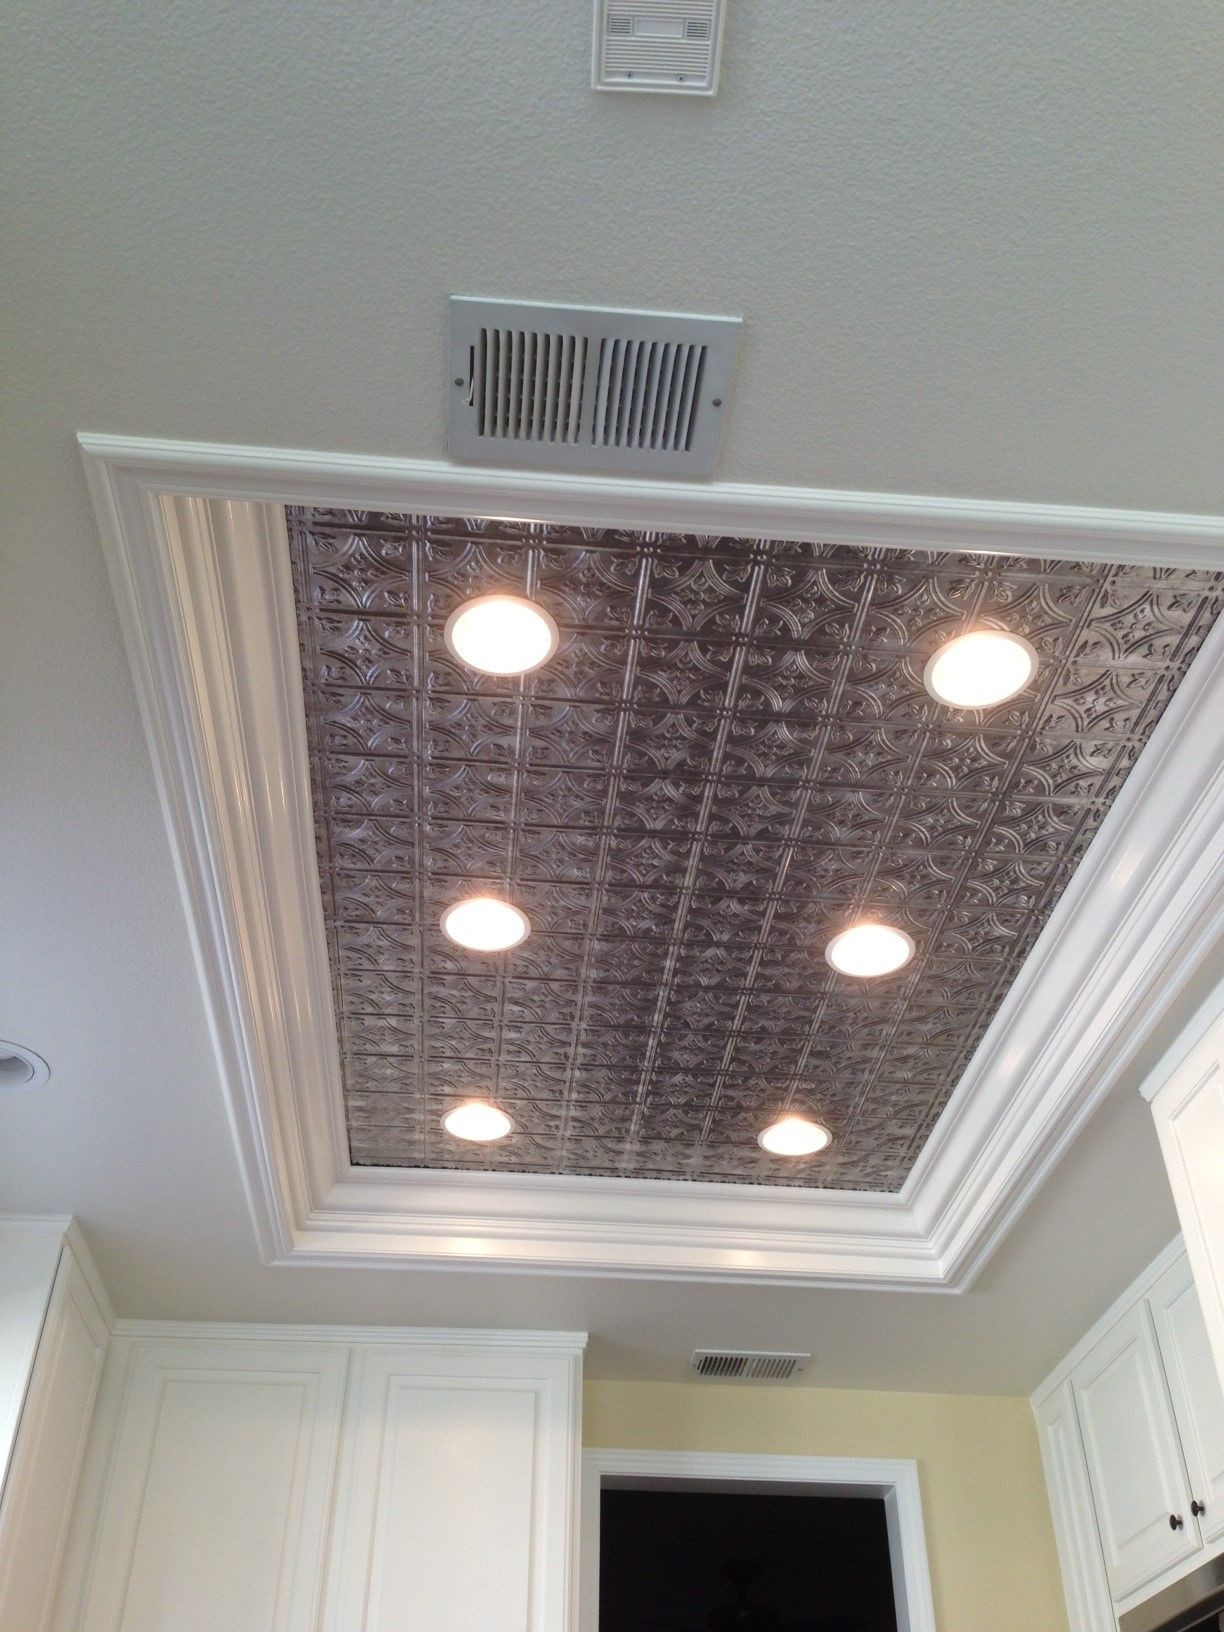 Best ideas about Ceiling Lights For Kitchen . Save or Pin Kitchen Ceiling Lights on Pinterest Now.